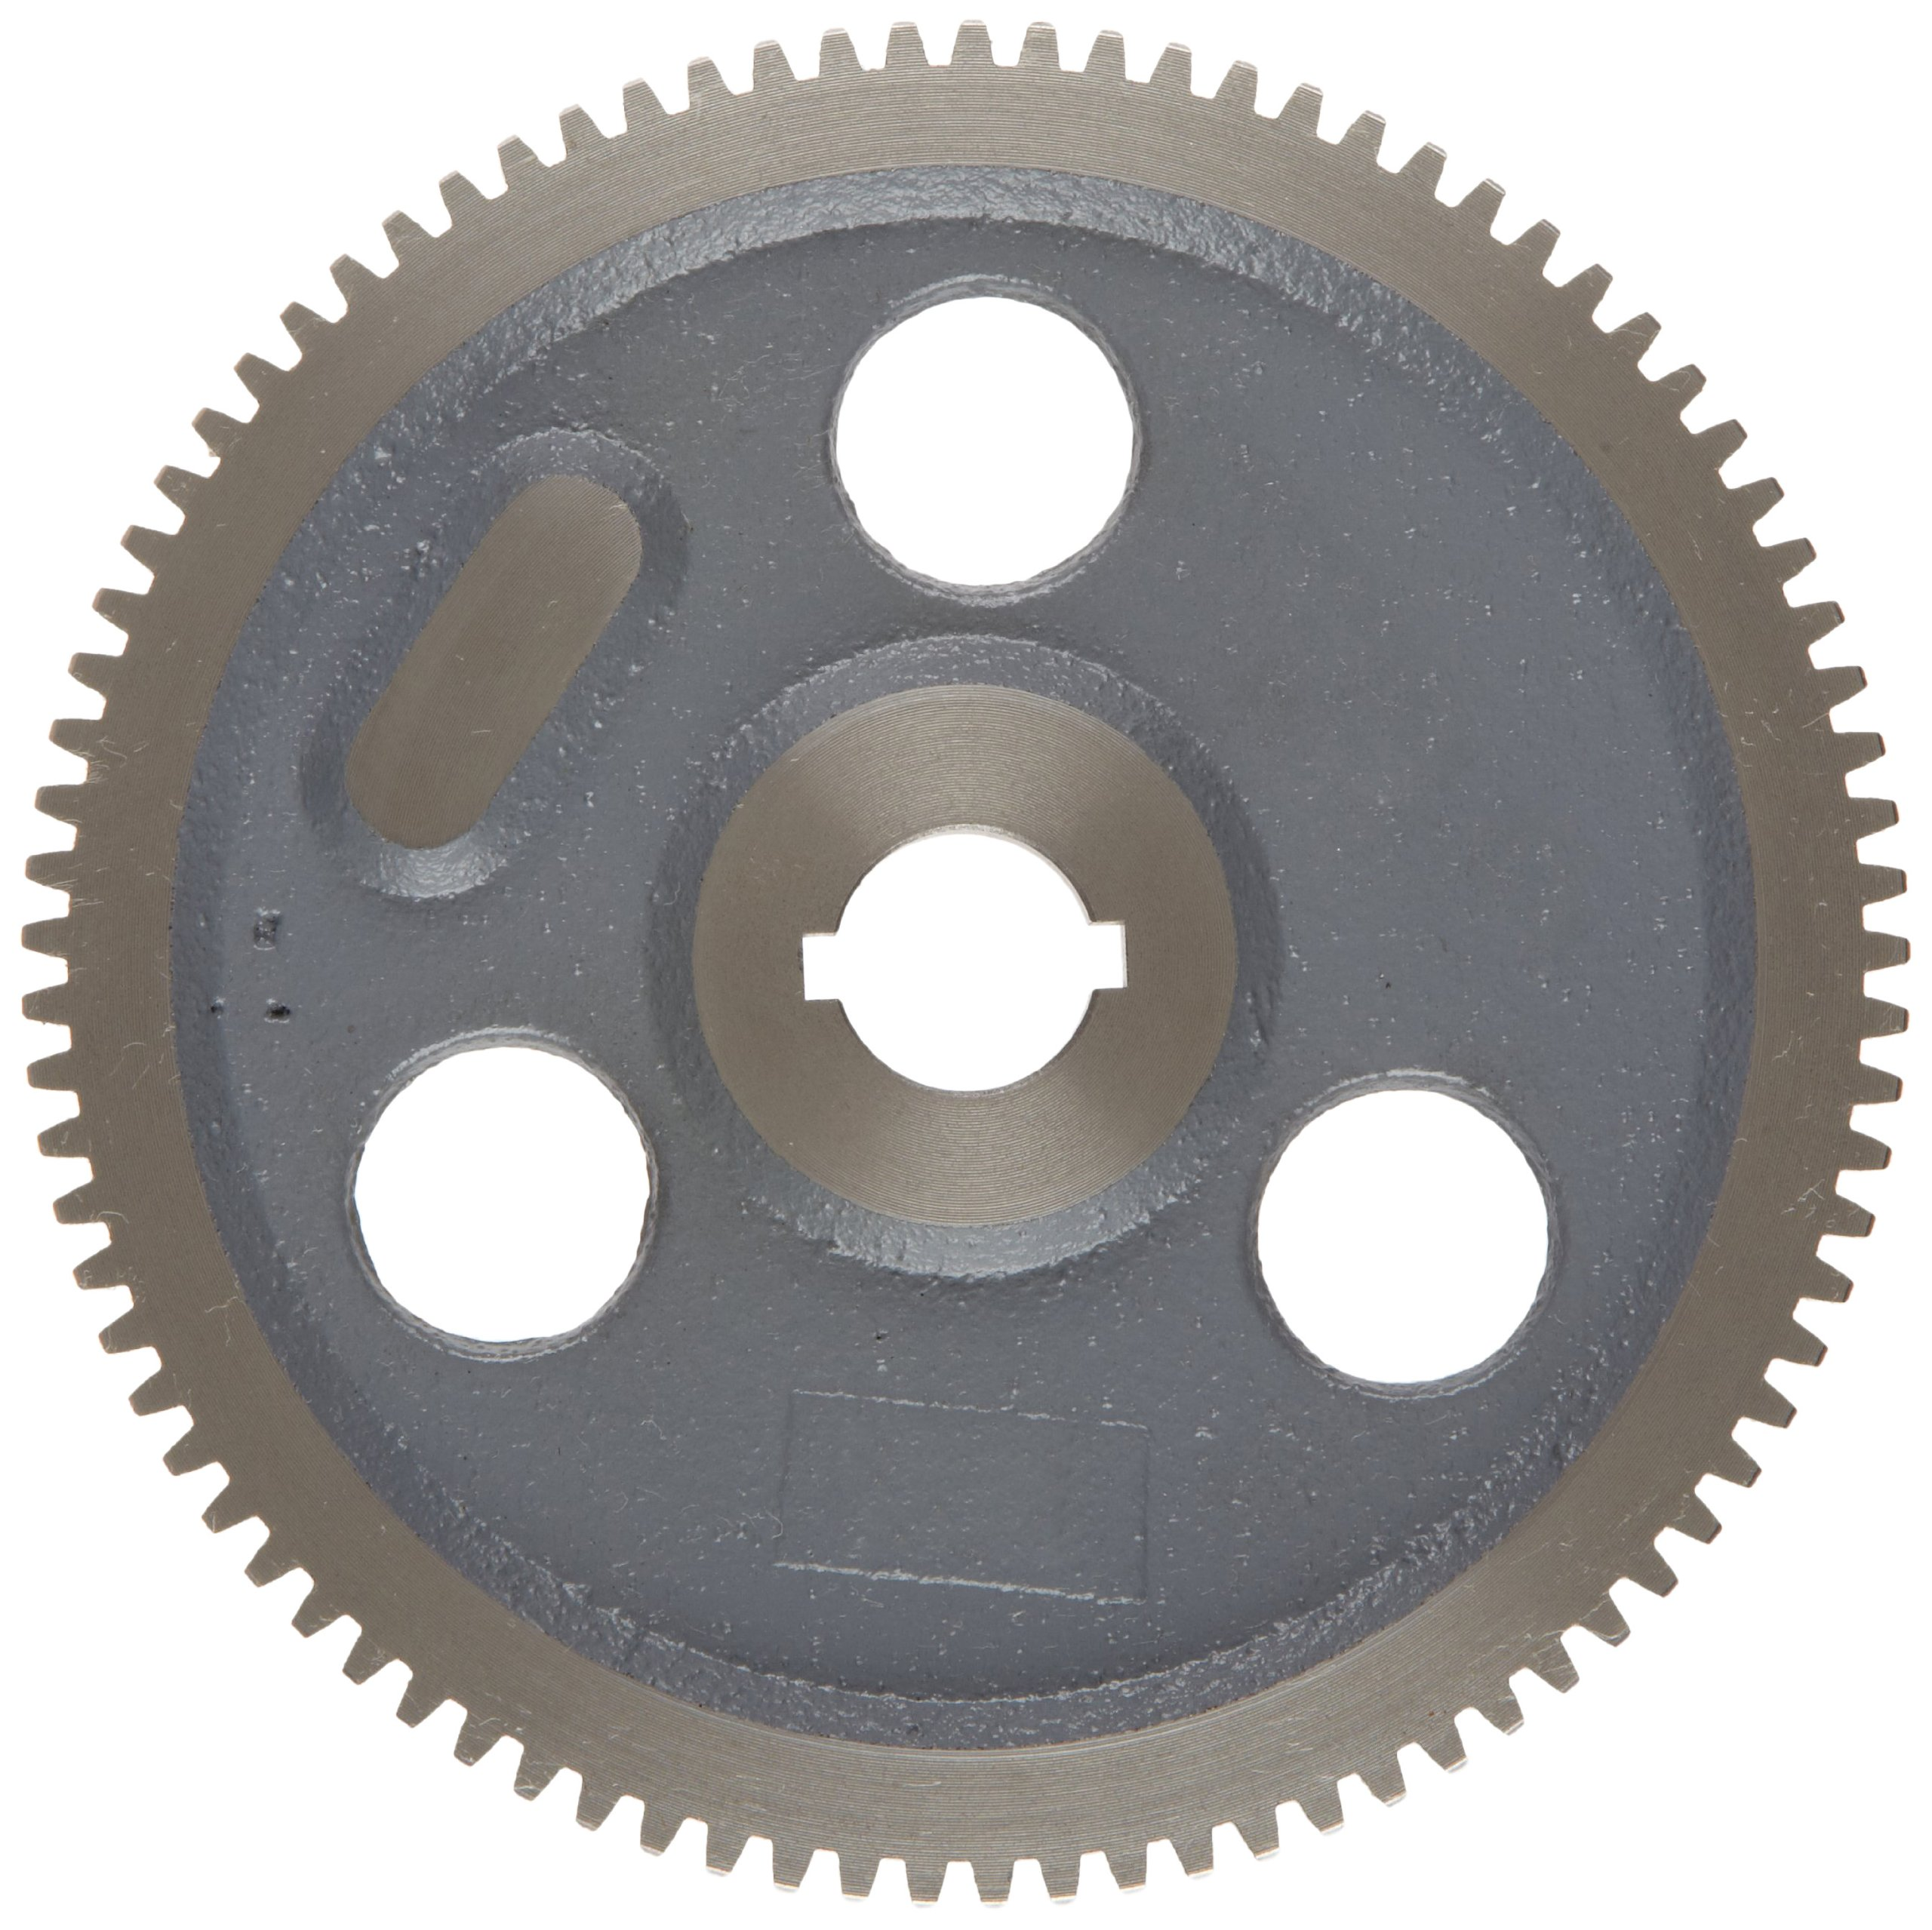 Boston Gear GB88A Web with Lightening Holes Change Gear, 14.5 Degree Pressure Angle, 16 Pitch, 0.750'' Bore, 88 Teeth, Cast Iron by Boston Gear